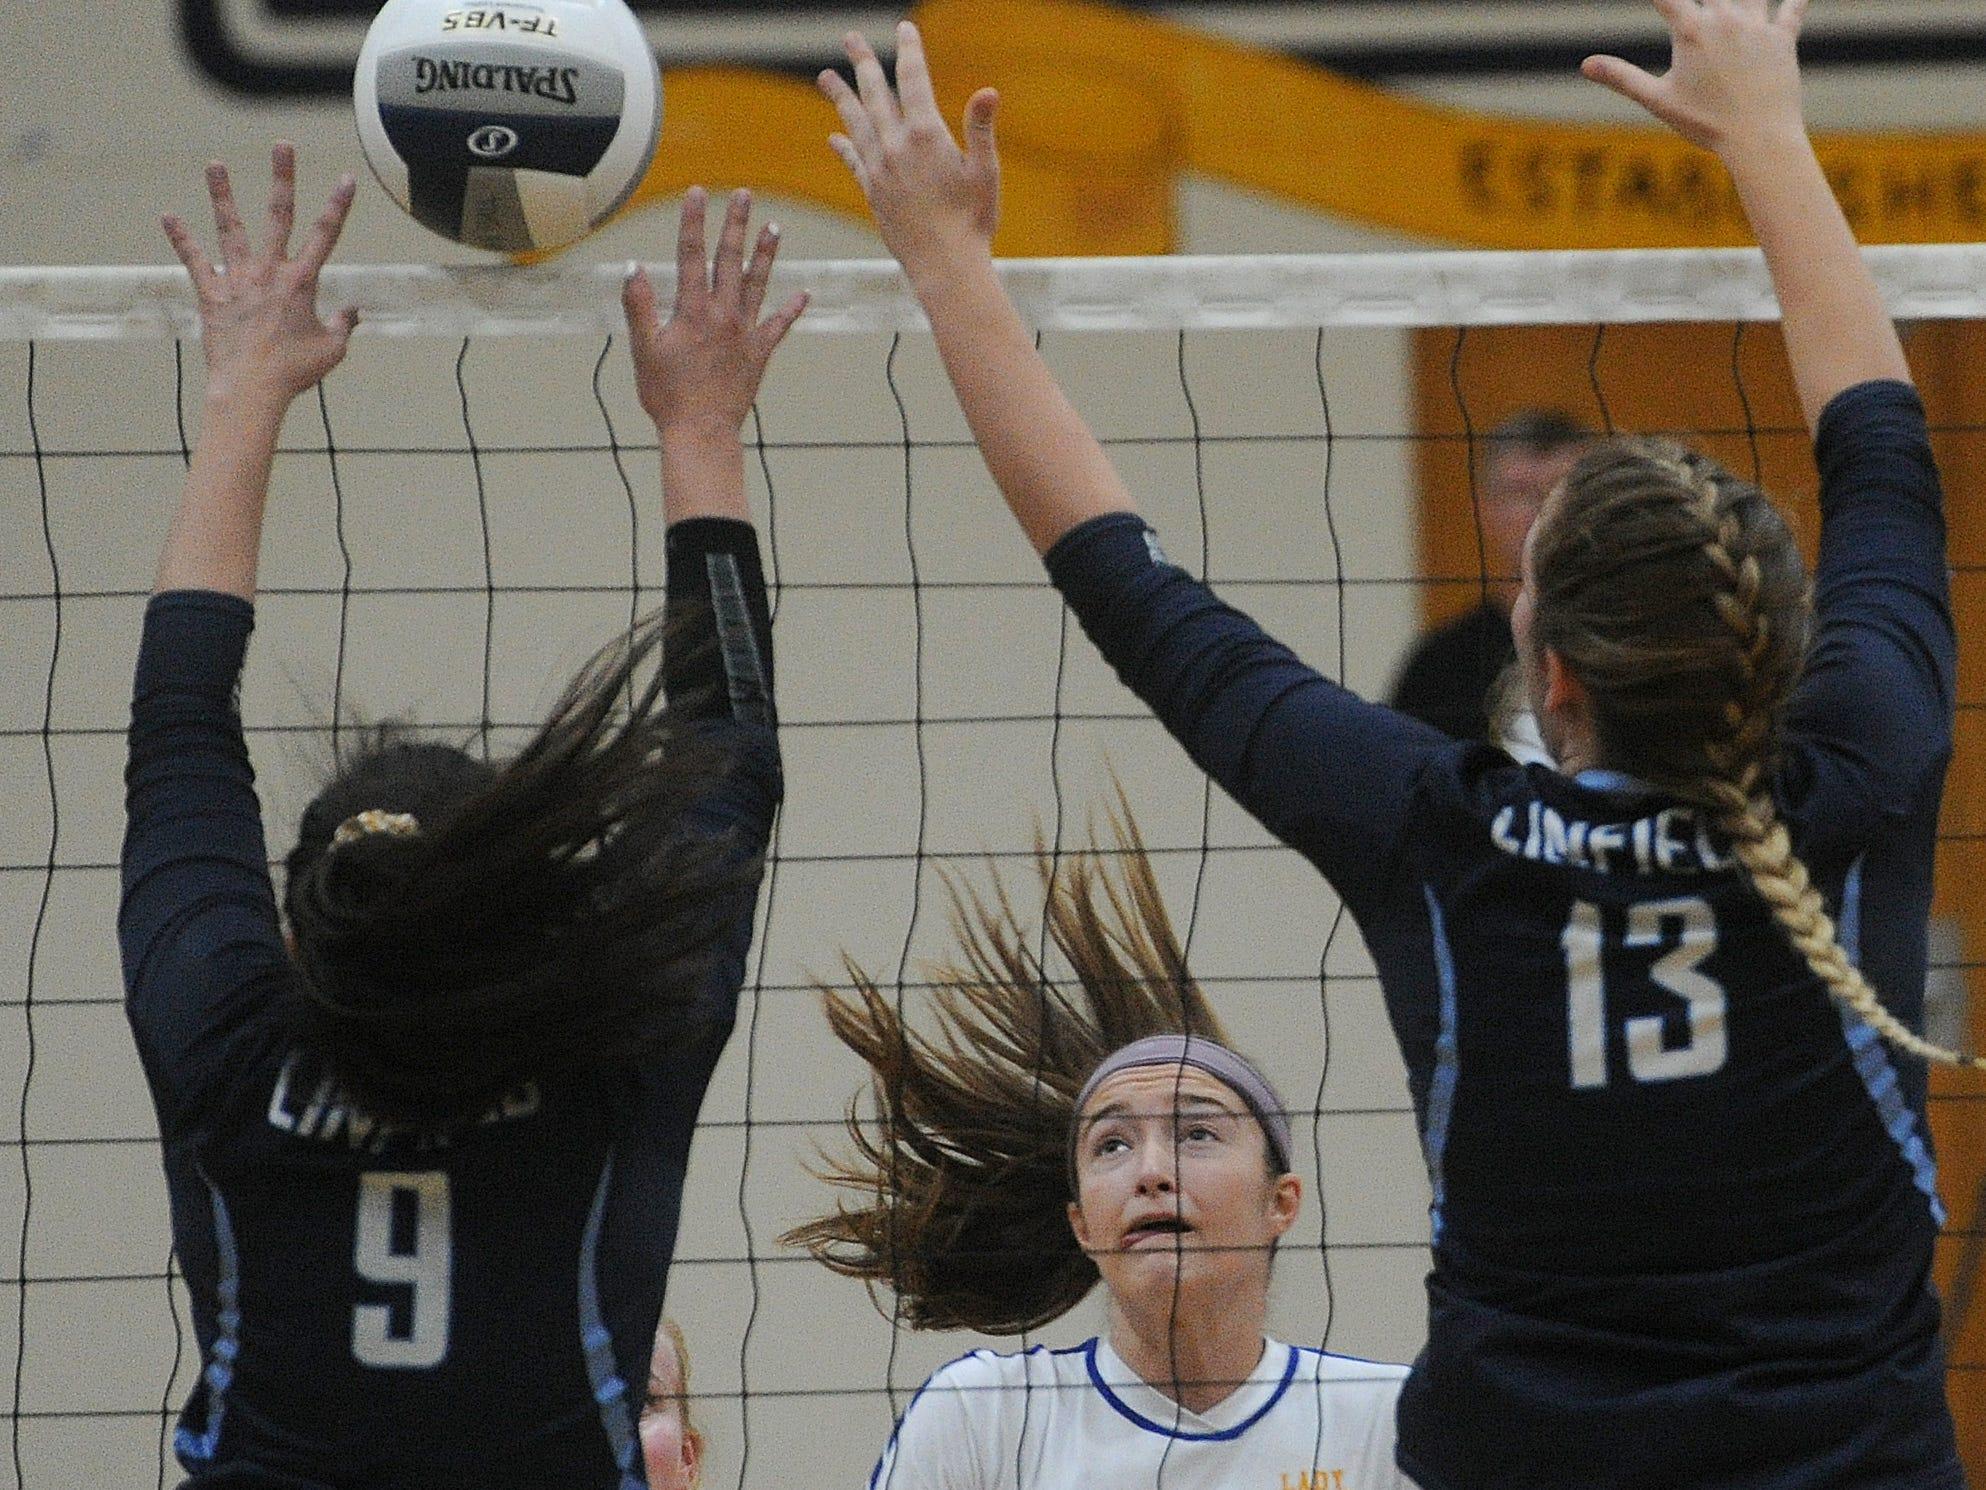 Kolby Fink (center) of Nordhoff watches Linfield Christian's Kelly Rausch (9) and Paige Williams (13) go for the block during the CIF-SS Division 7 final Saturday.